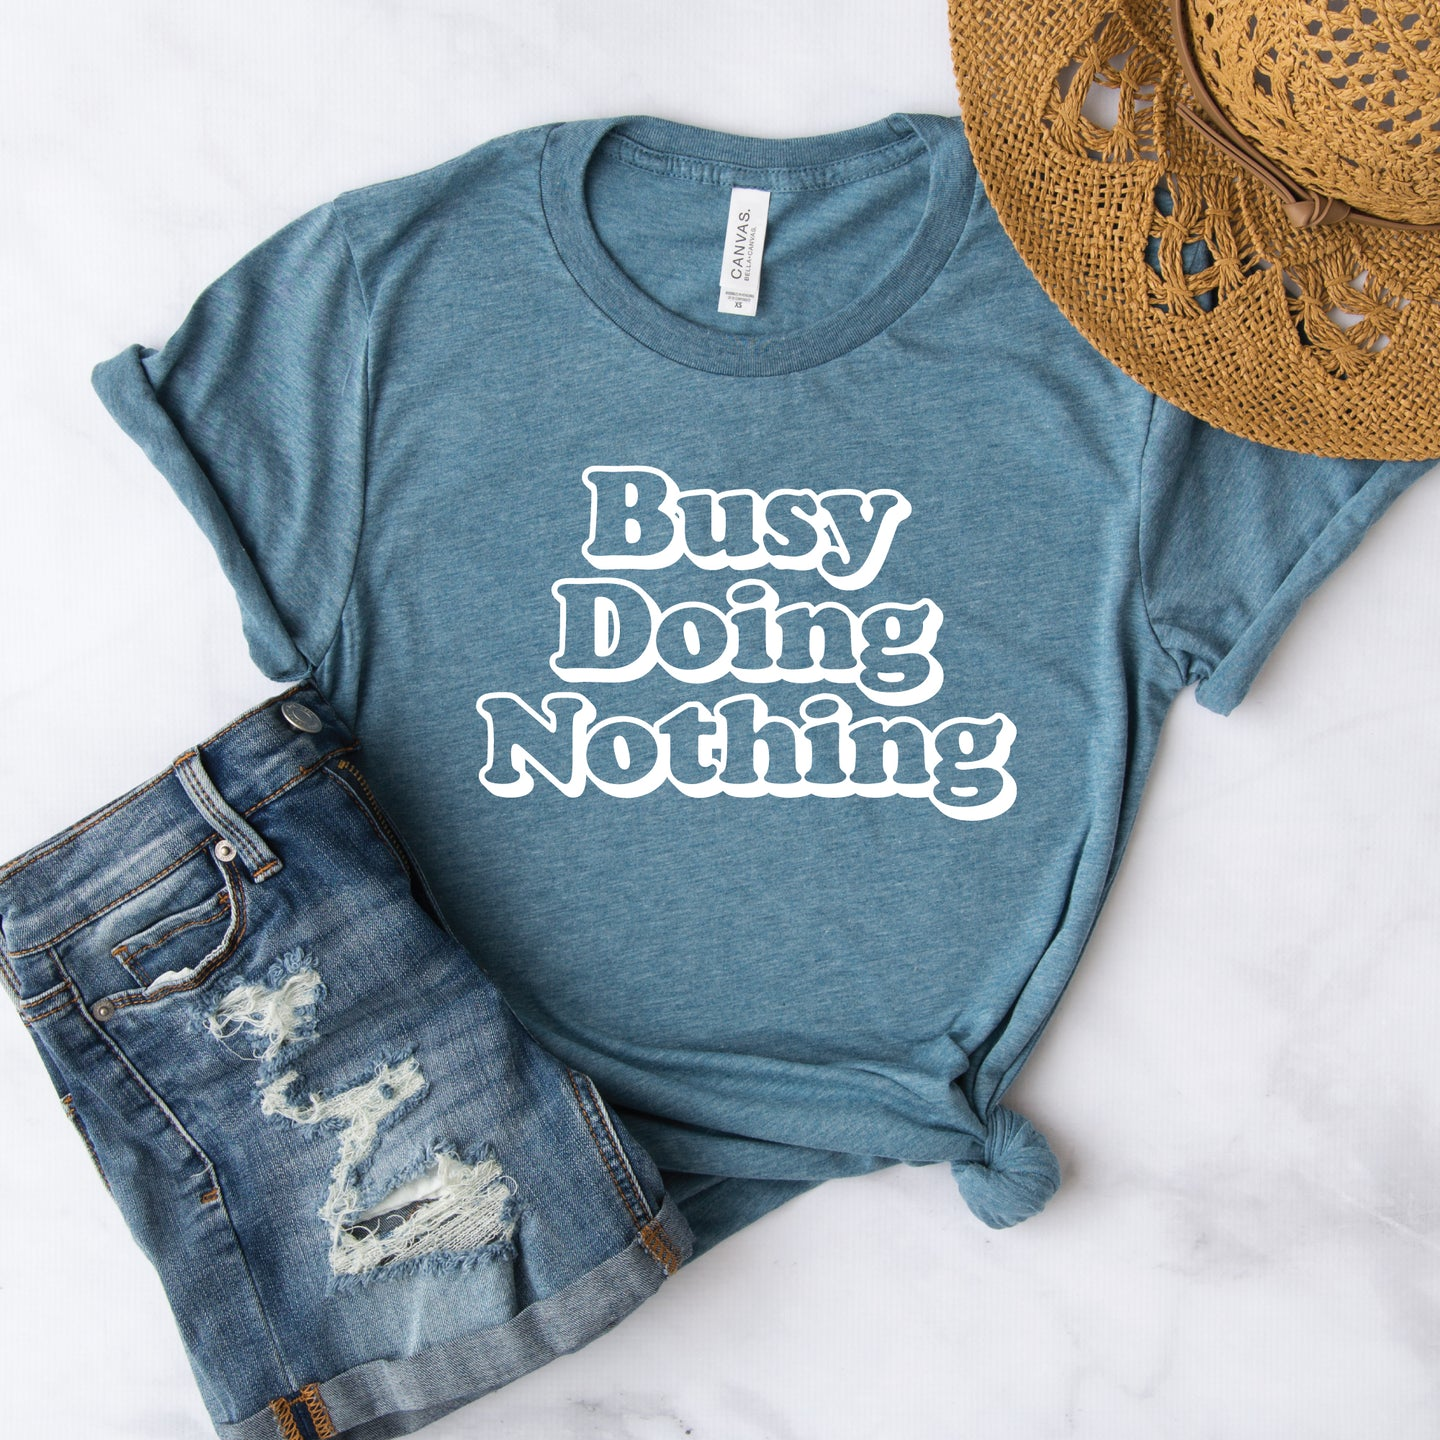 Busy Doing Nothing , Graphic Tee